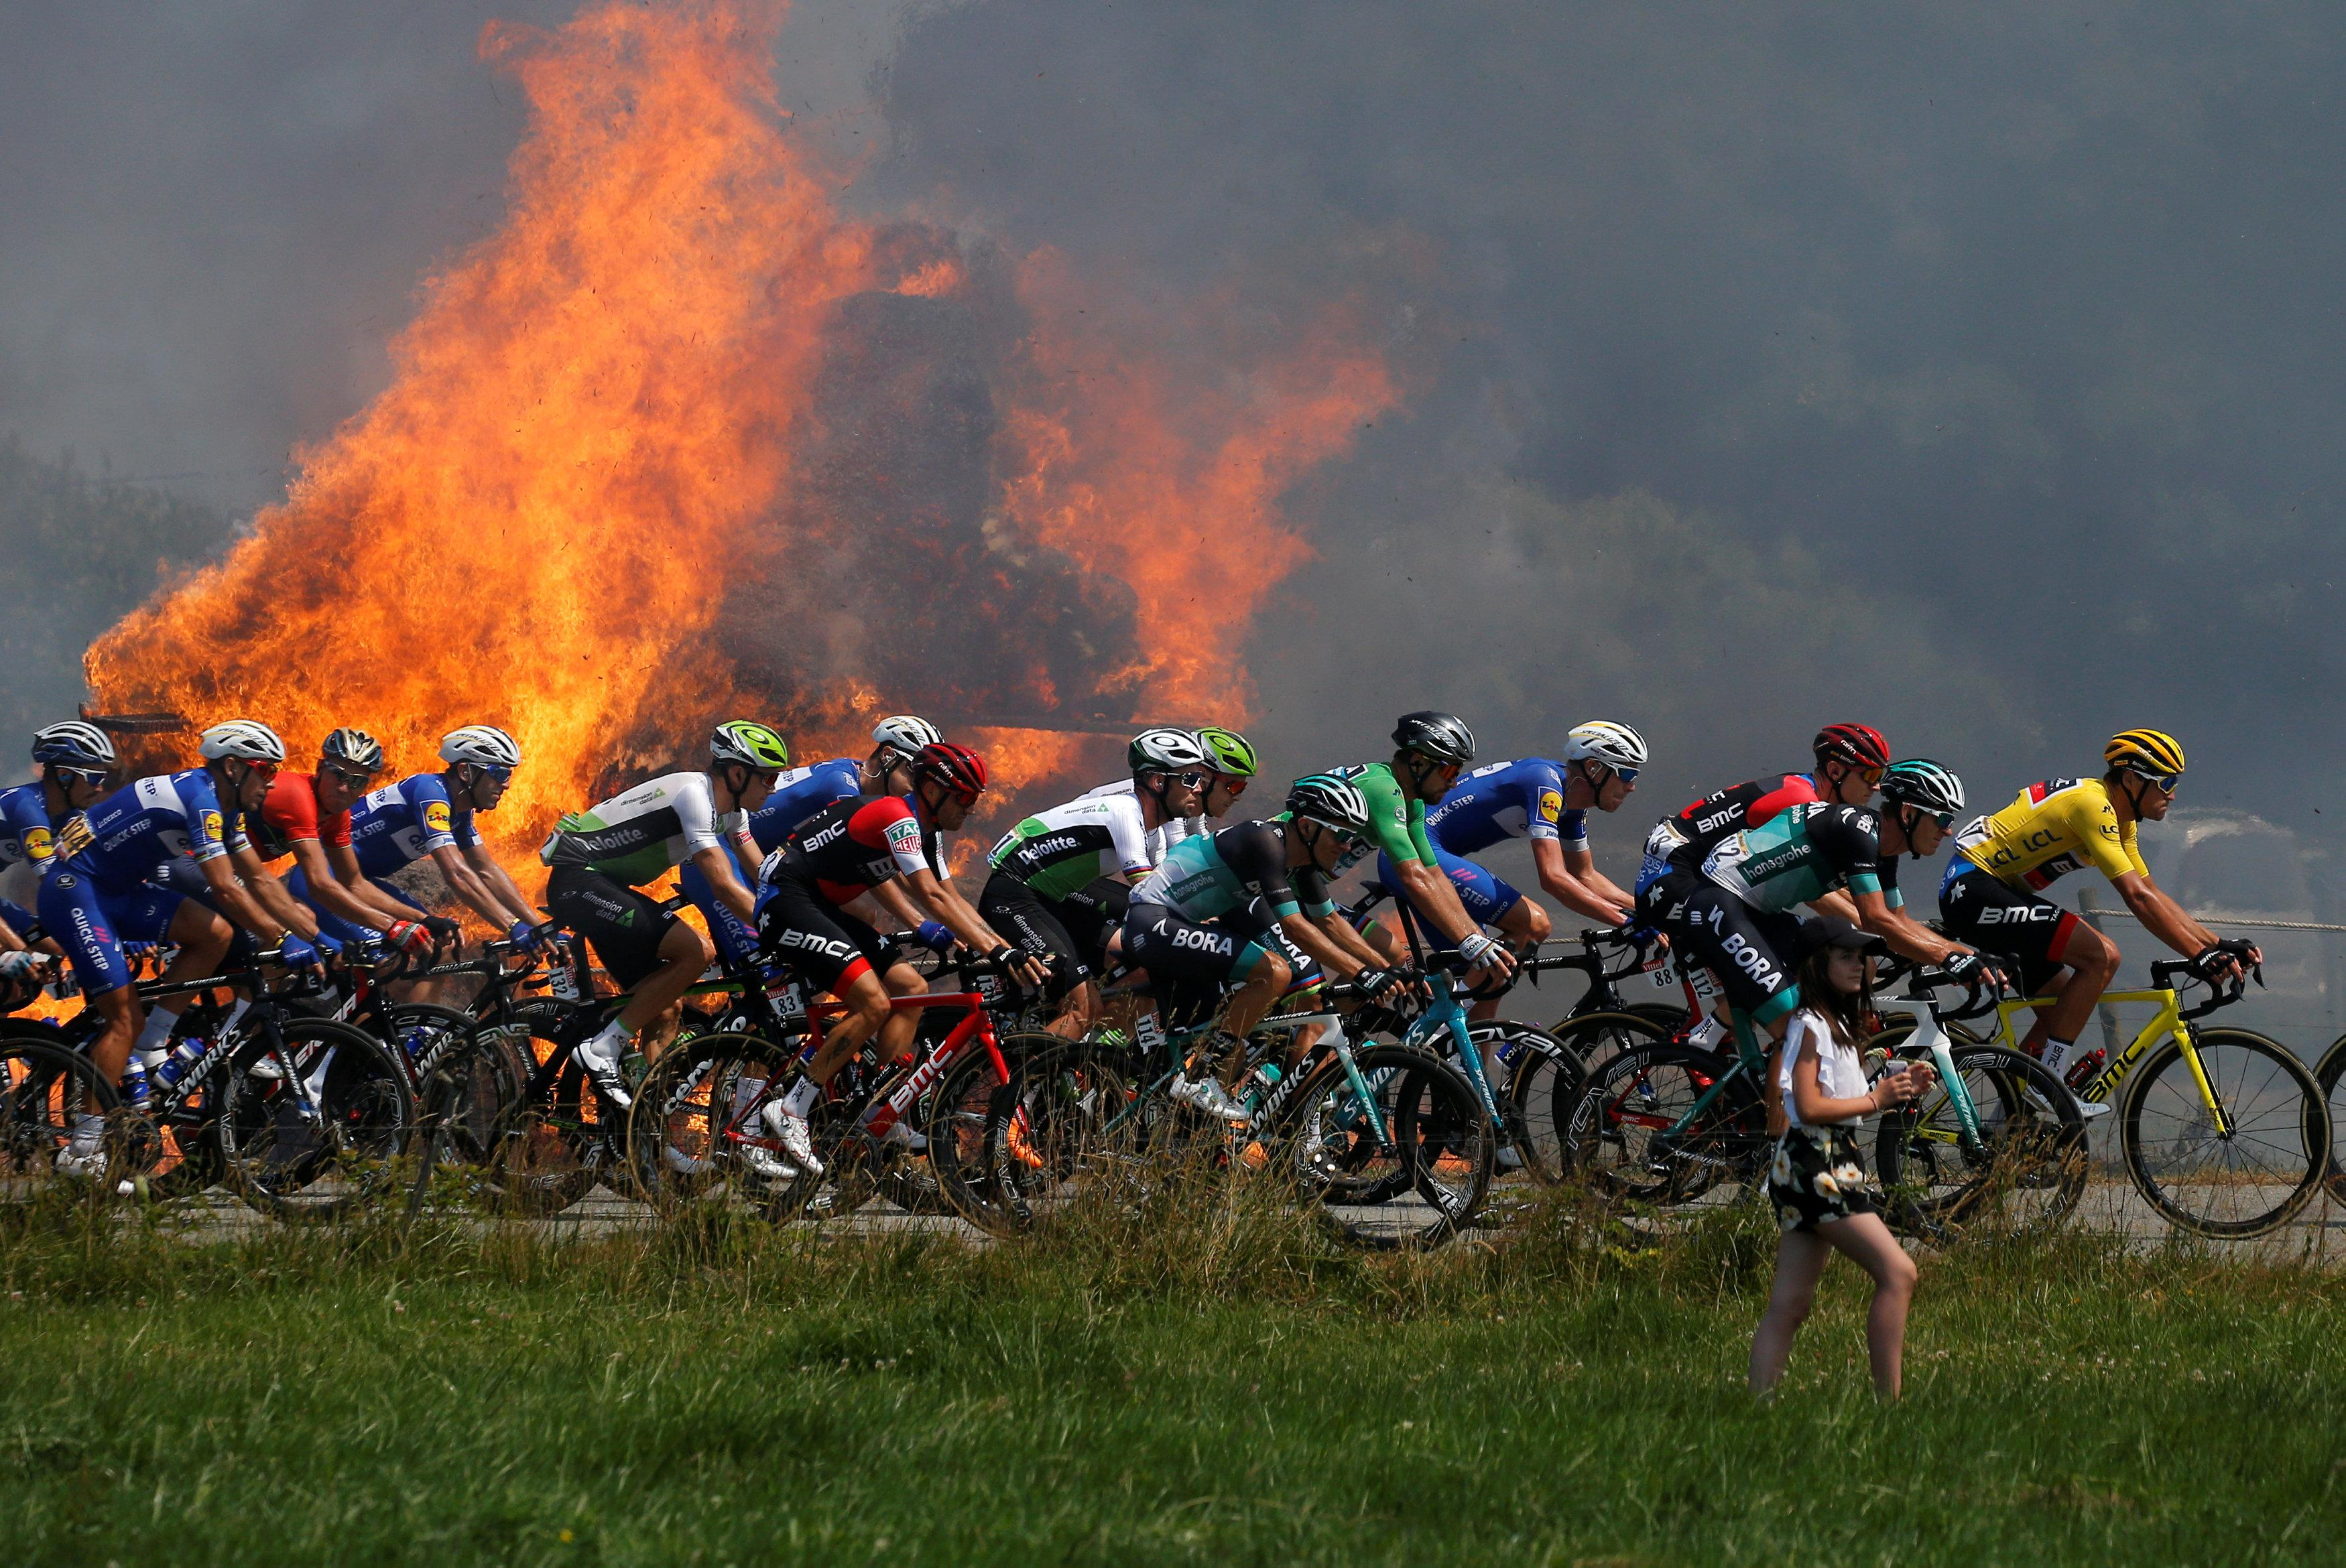 The peloton roared past but luckily the wind was blowing the smoke away from them